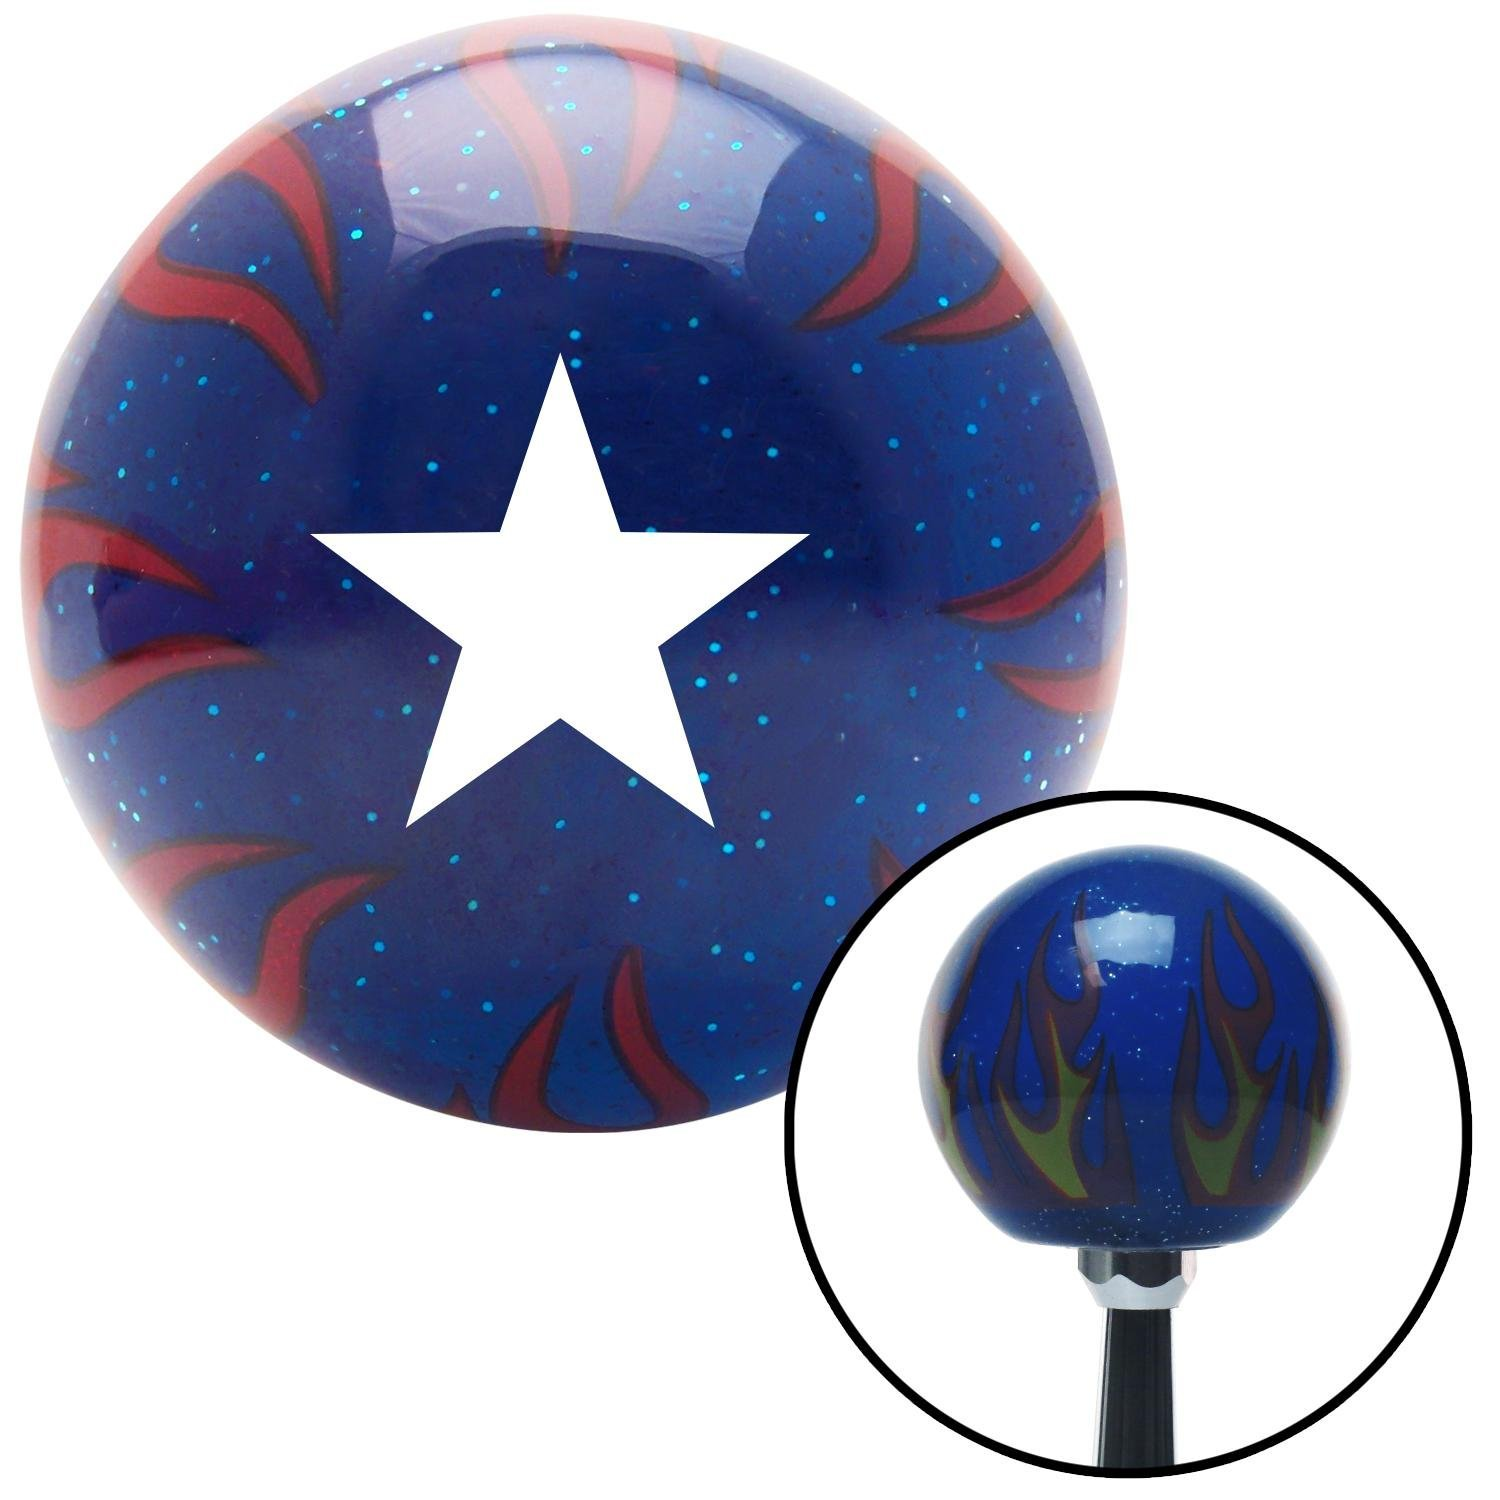 American Shifter 249817 Blue Flame Metal Flake Shift Knob with M16 x 1.5 Insert White Officer 07 - Rear Admiral, Lower Half